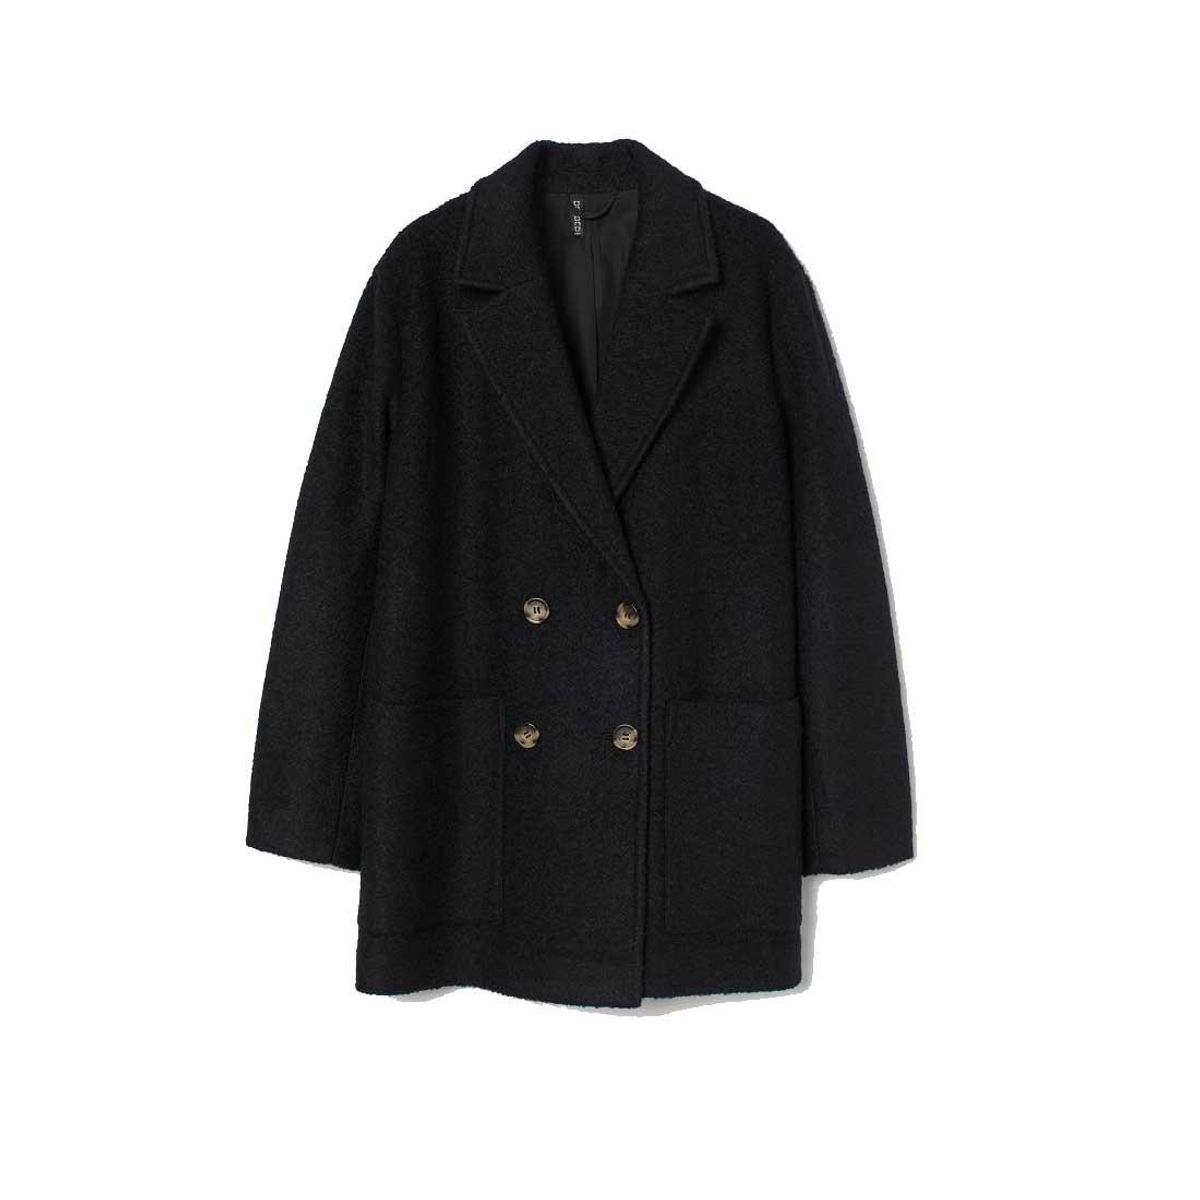 h and m wool blend coat